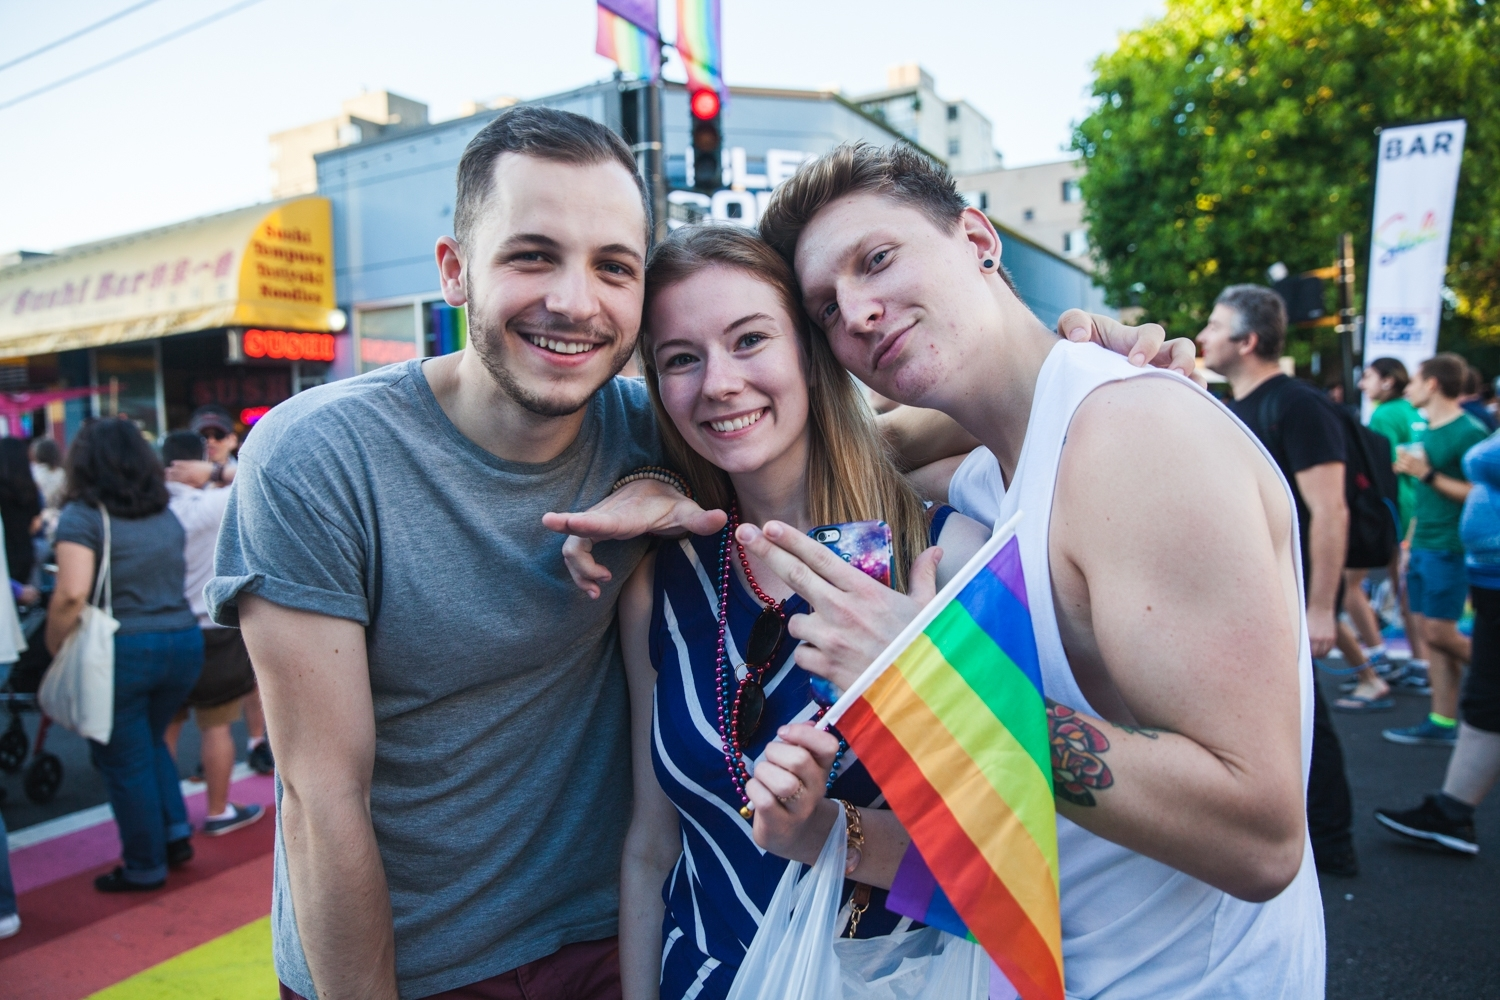 Gay pride 2019 dates